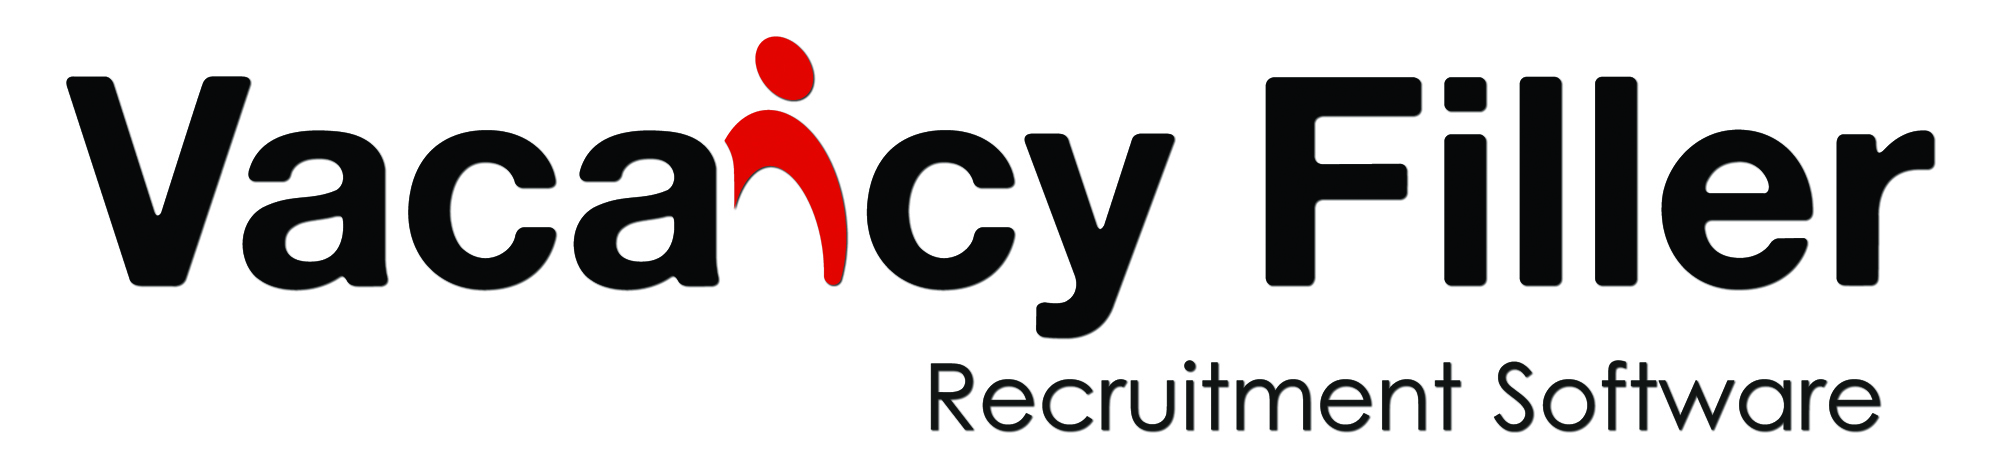 Vacancy Filler Recruitment Software